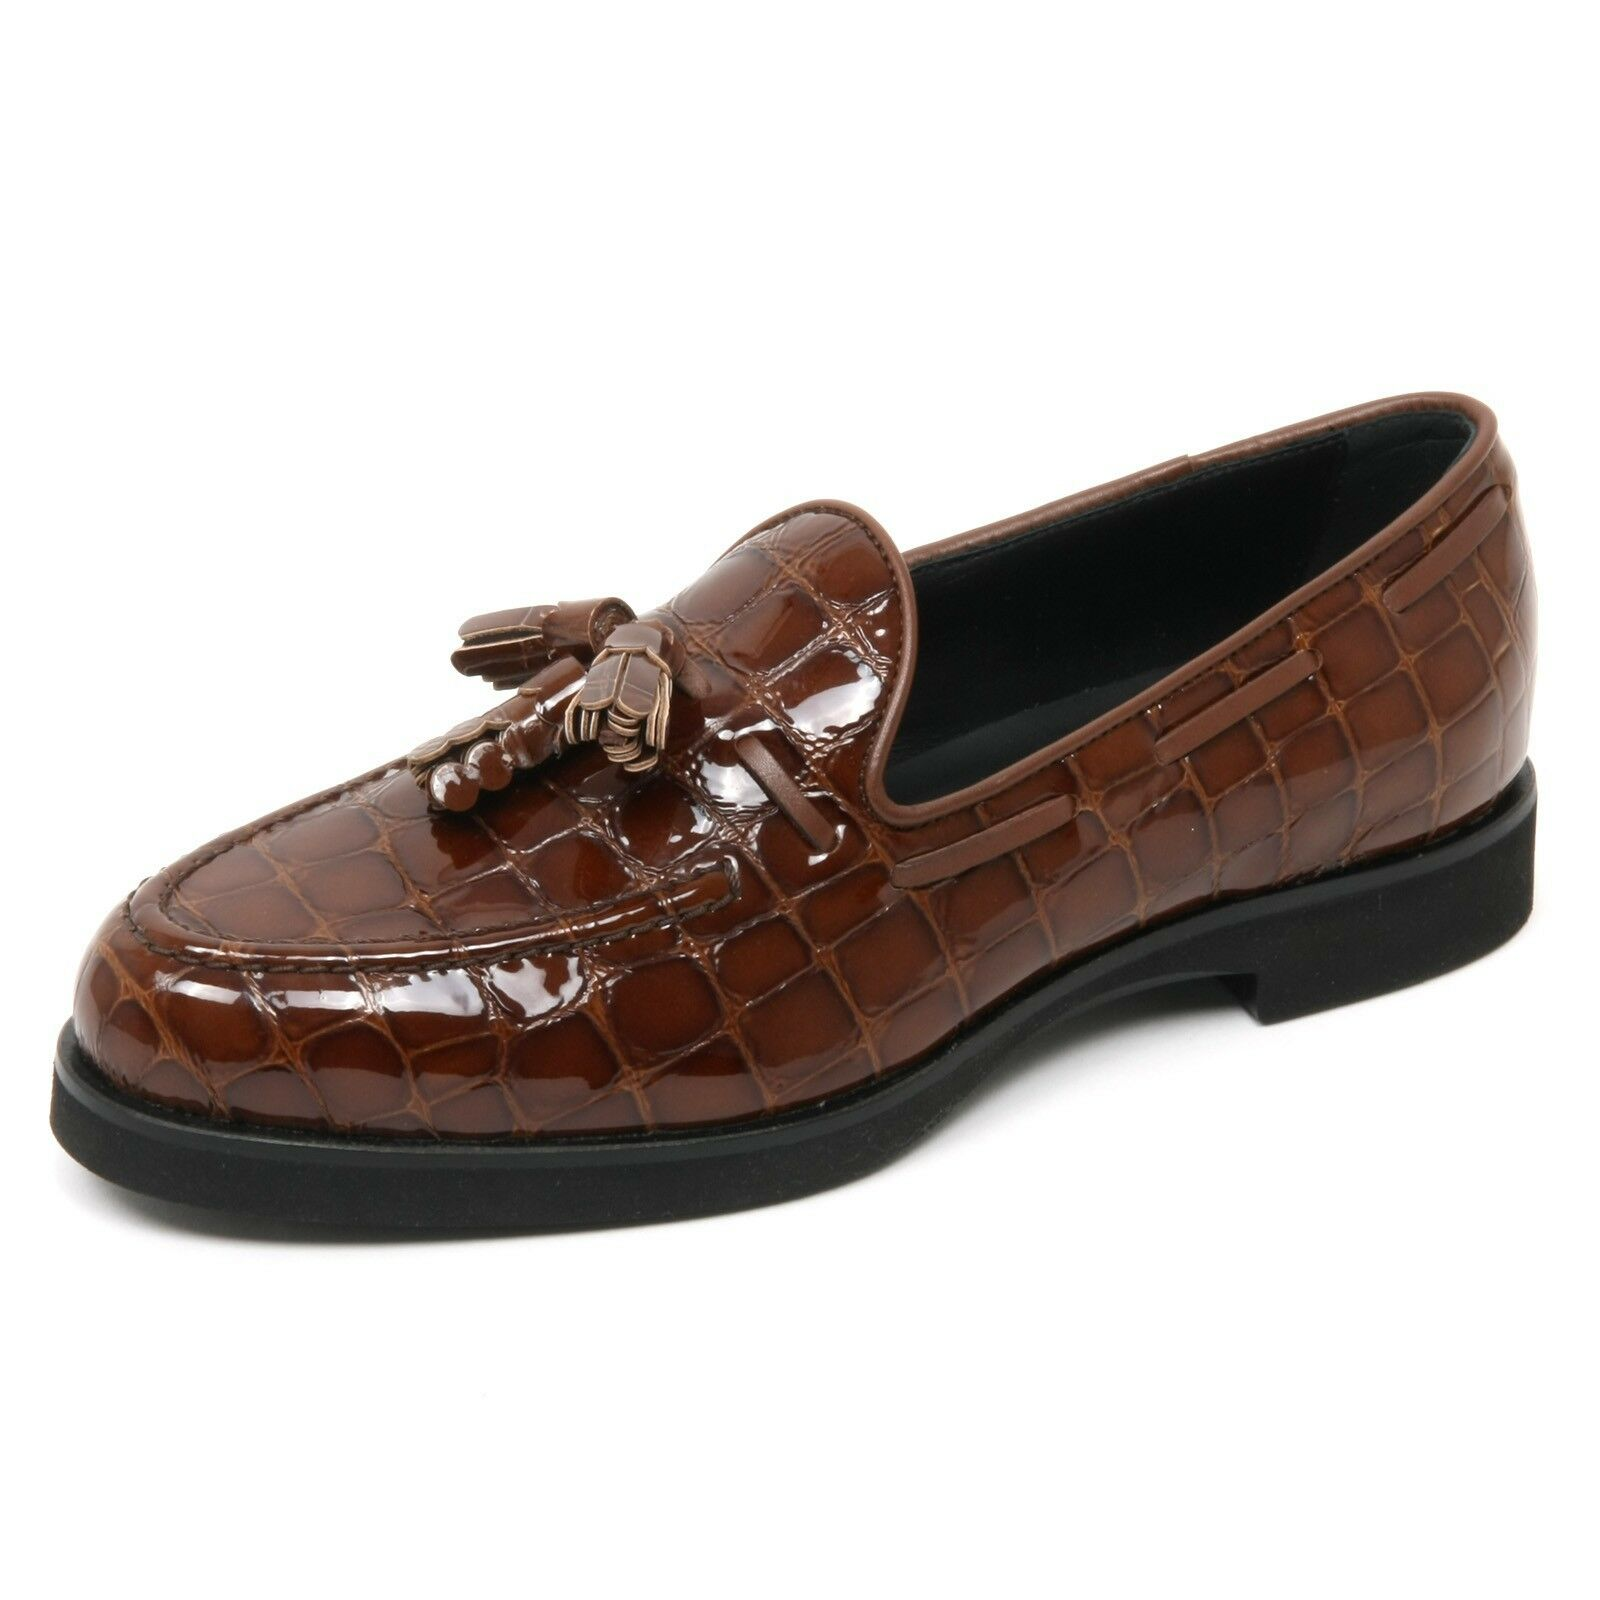 B9022 mocassino mujer Tod 's Scarpa nappine nappine nappine marrón loafer zapatos Woman  lo último